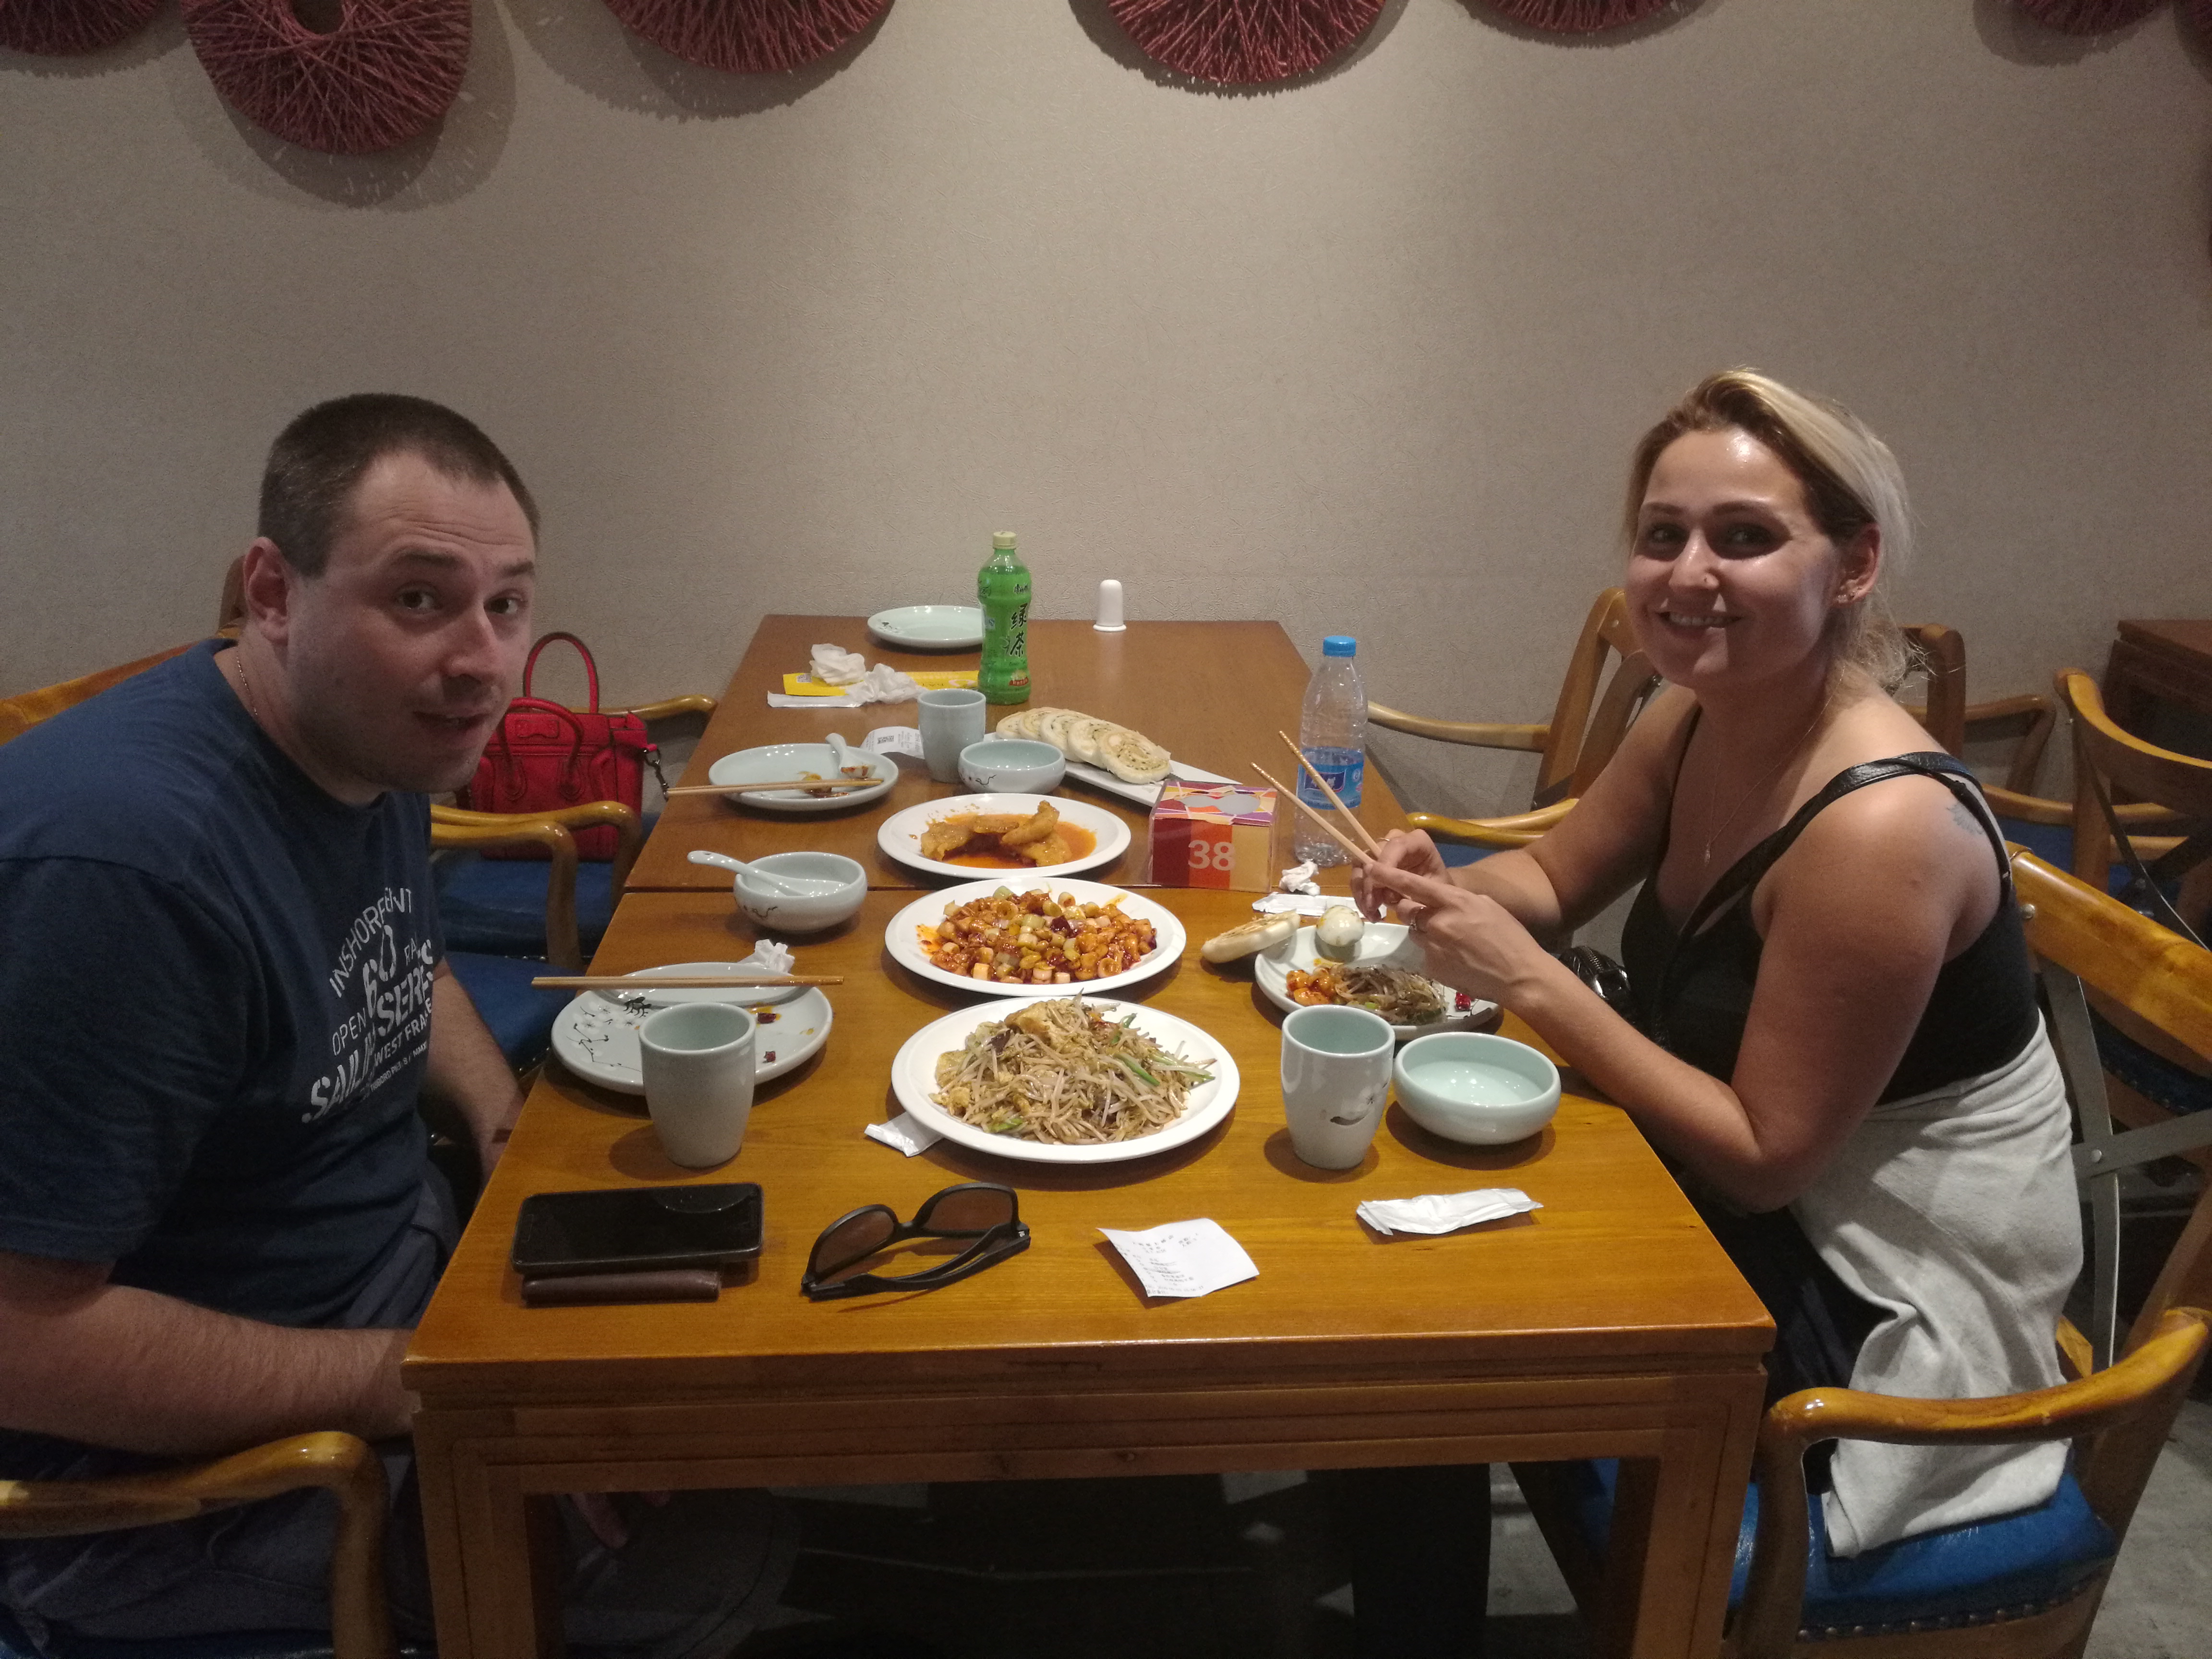 eating Chinese food